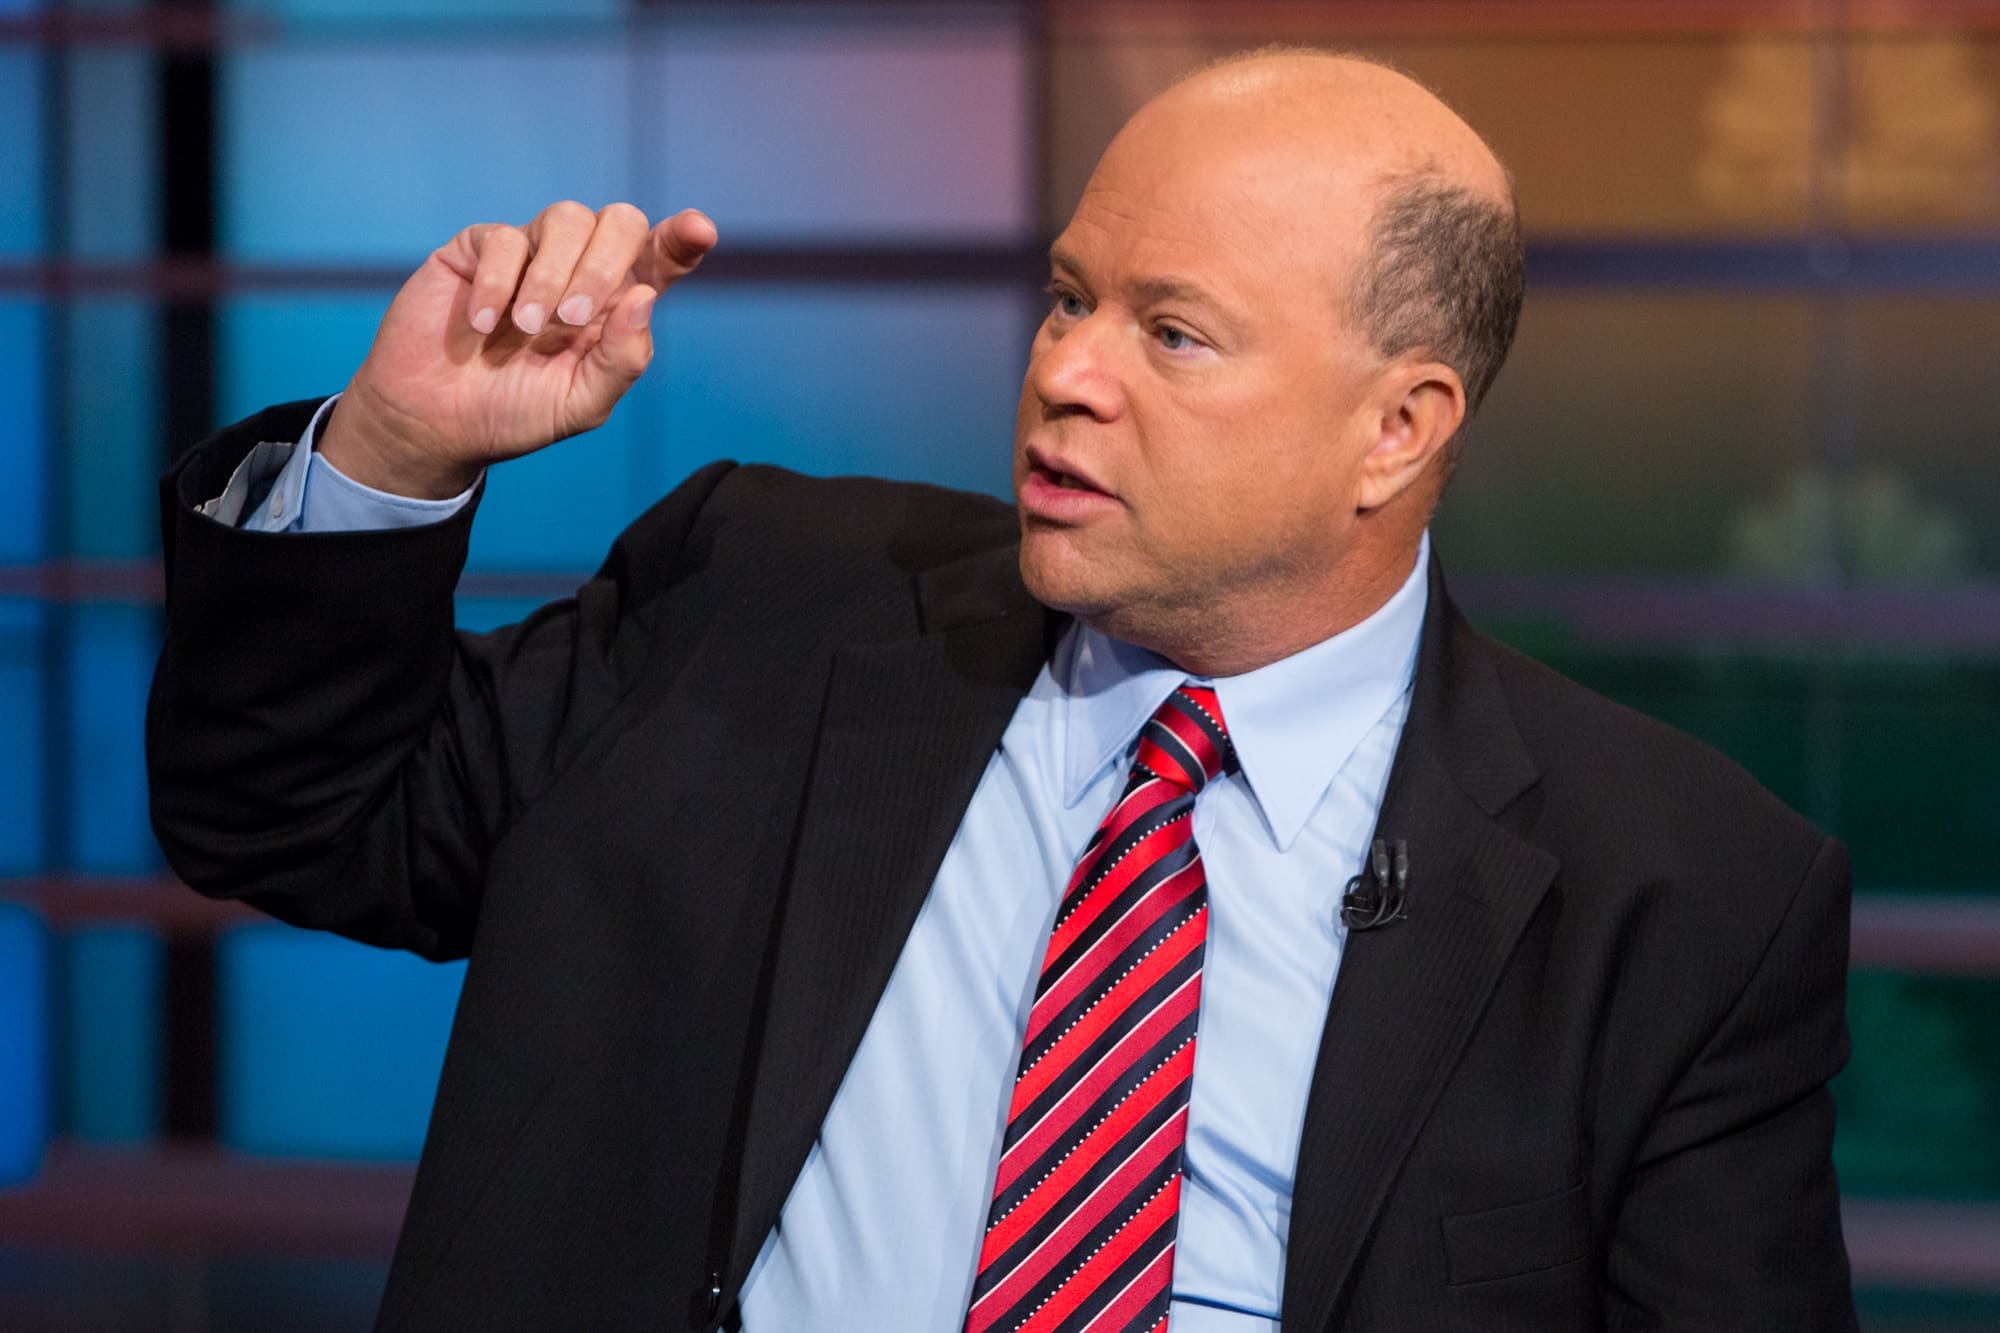 David Tepper says he's still betting on this bull market: 'I love riding a horse that's running'